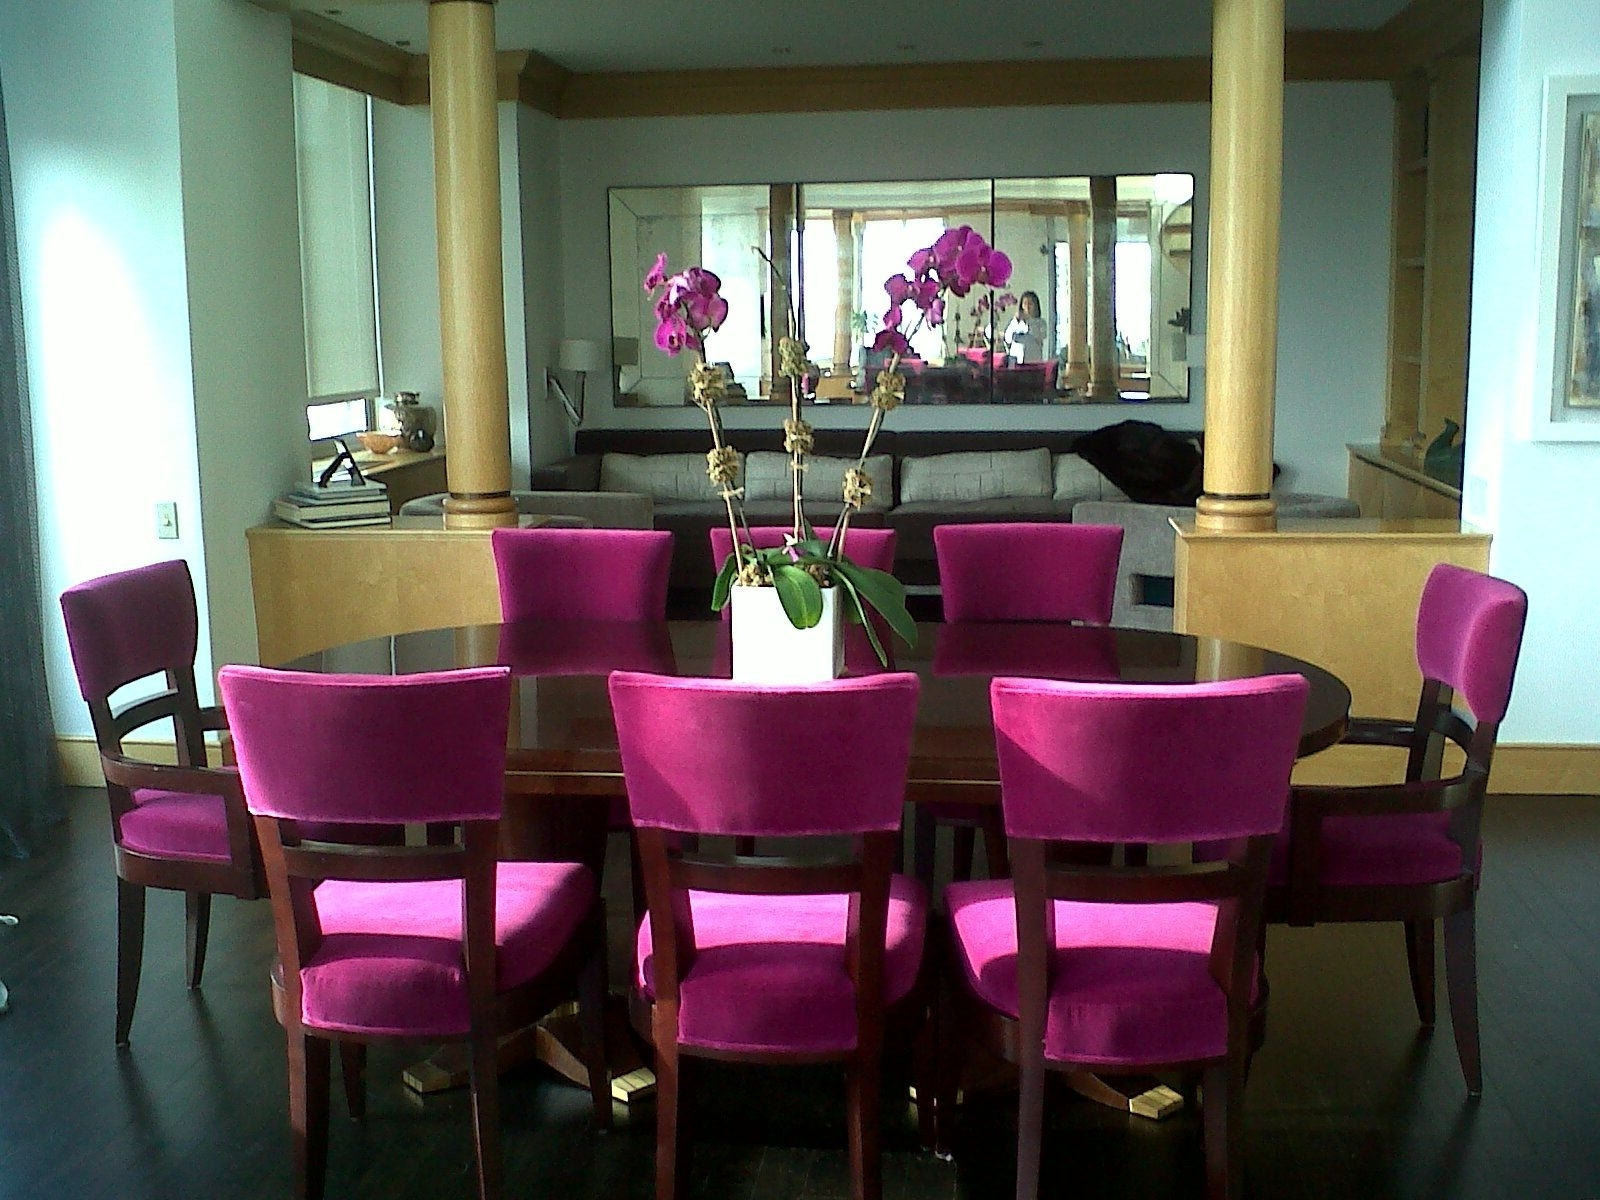 Dining Tables And Purple Chairs Within Most Popular Wonderful Purple Dining Room Sets With Oval Wooden Dining Table And (Gallery 4 of 25)